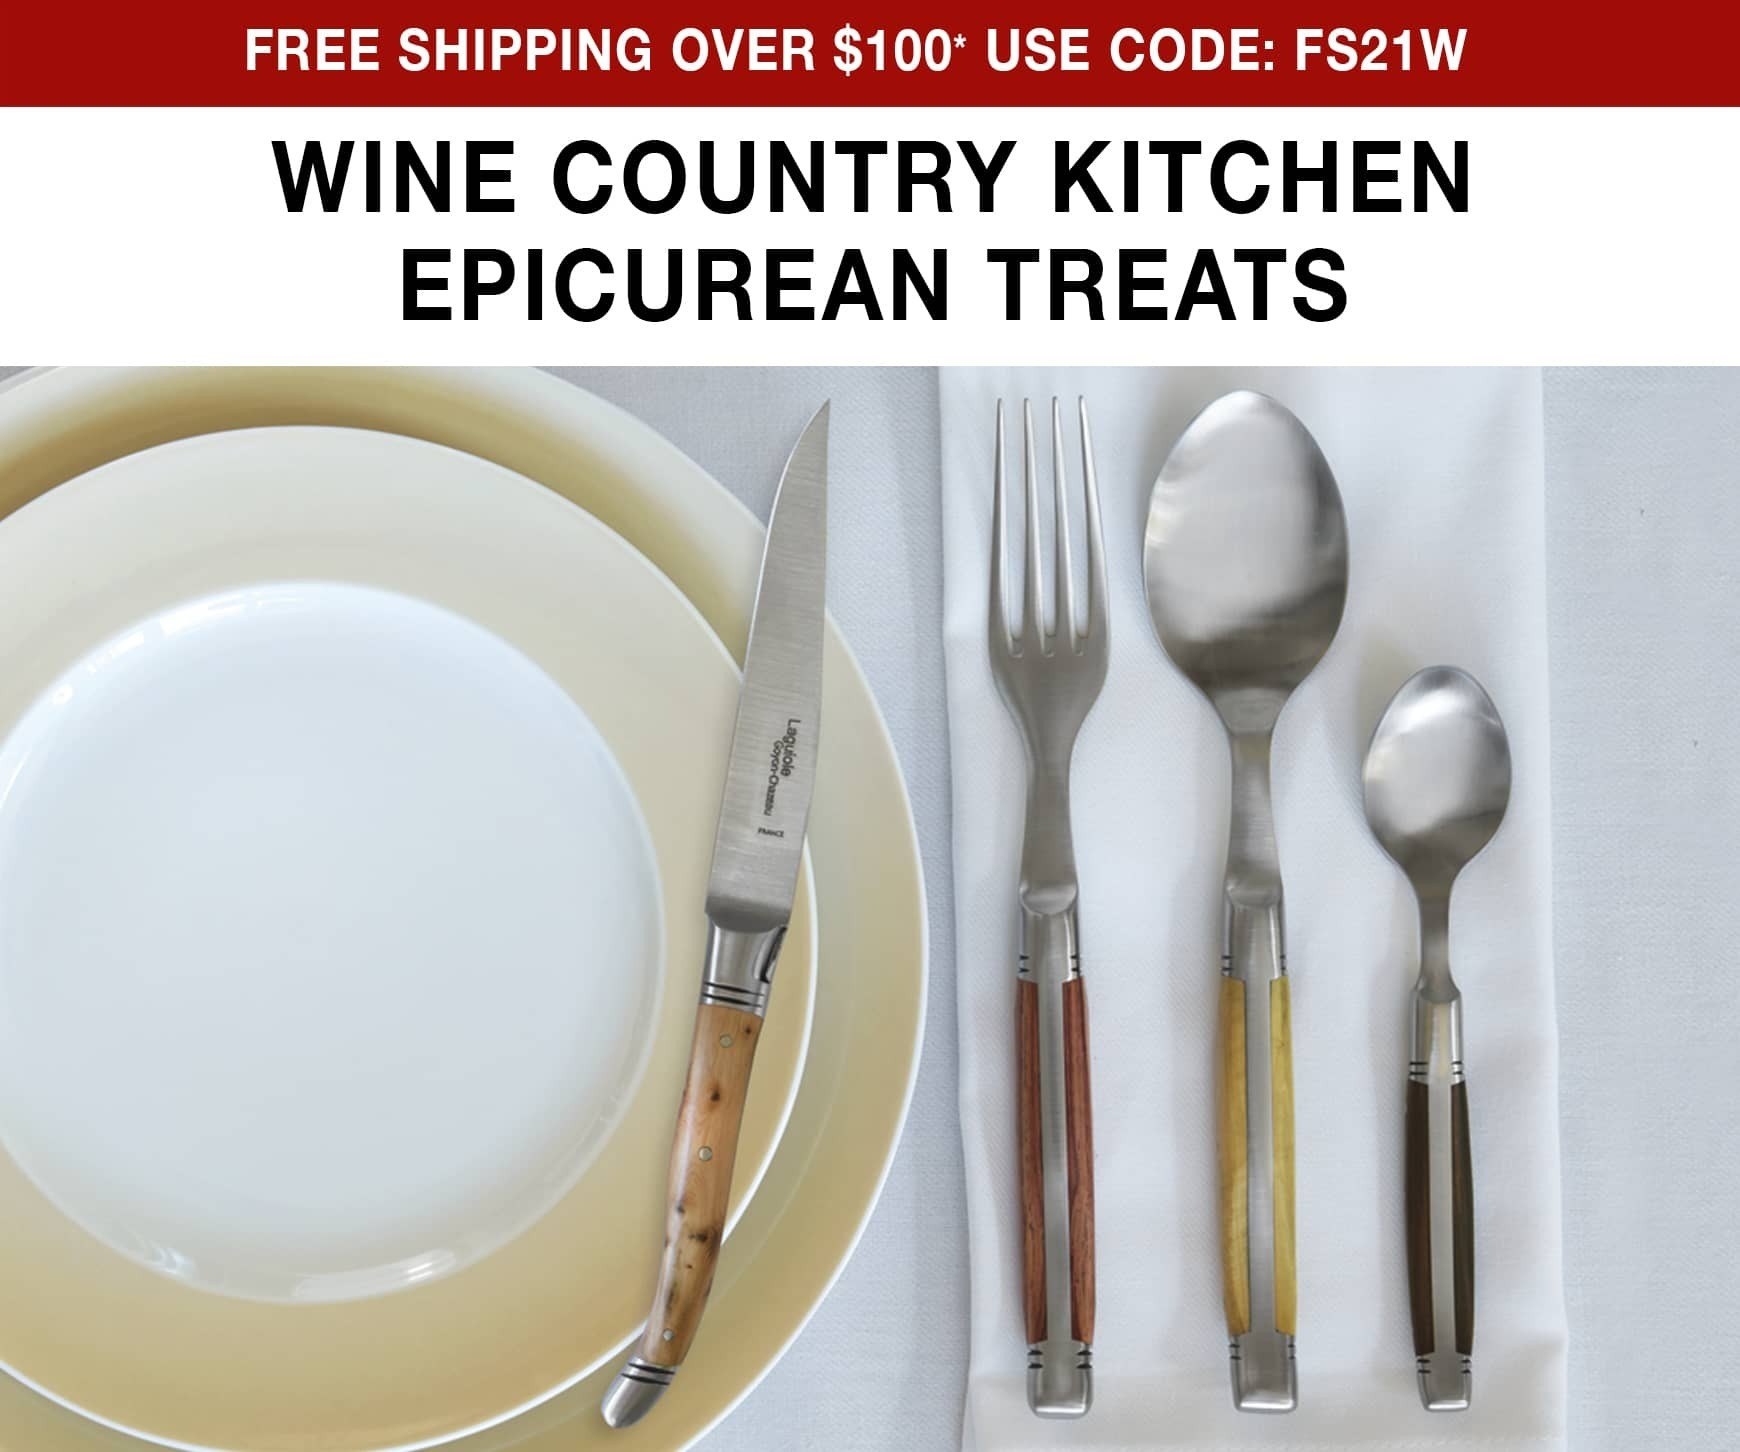 Wine Country Kitchen Epicurean Treats - Free Shipping on orders over $100* Use Code FS21W